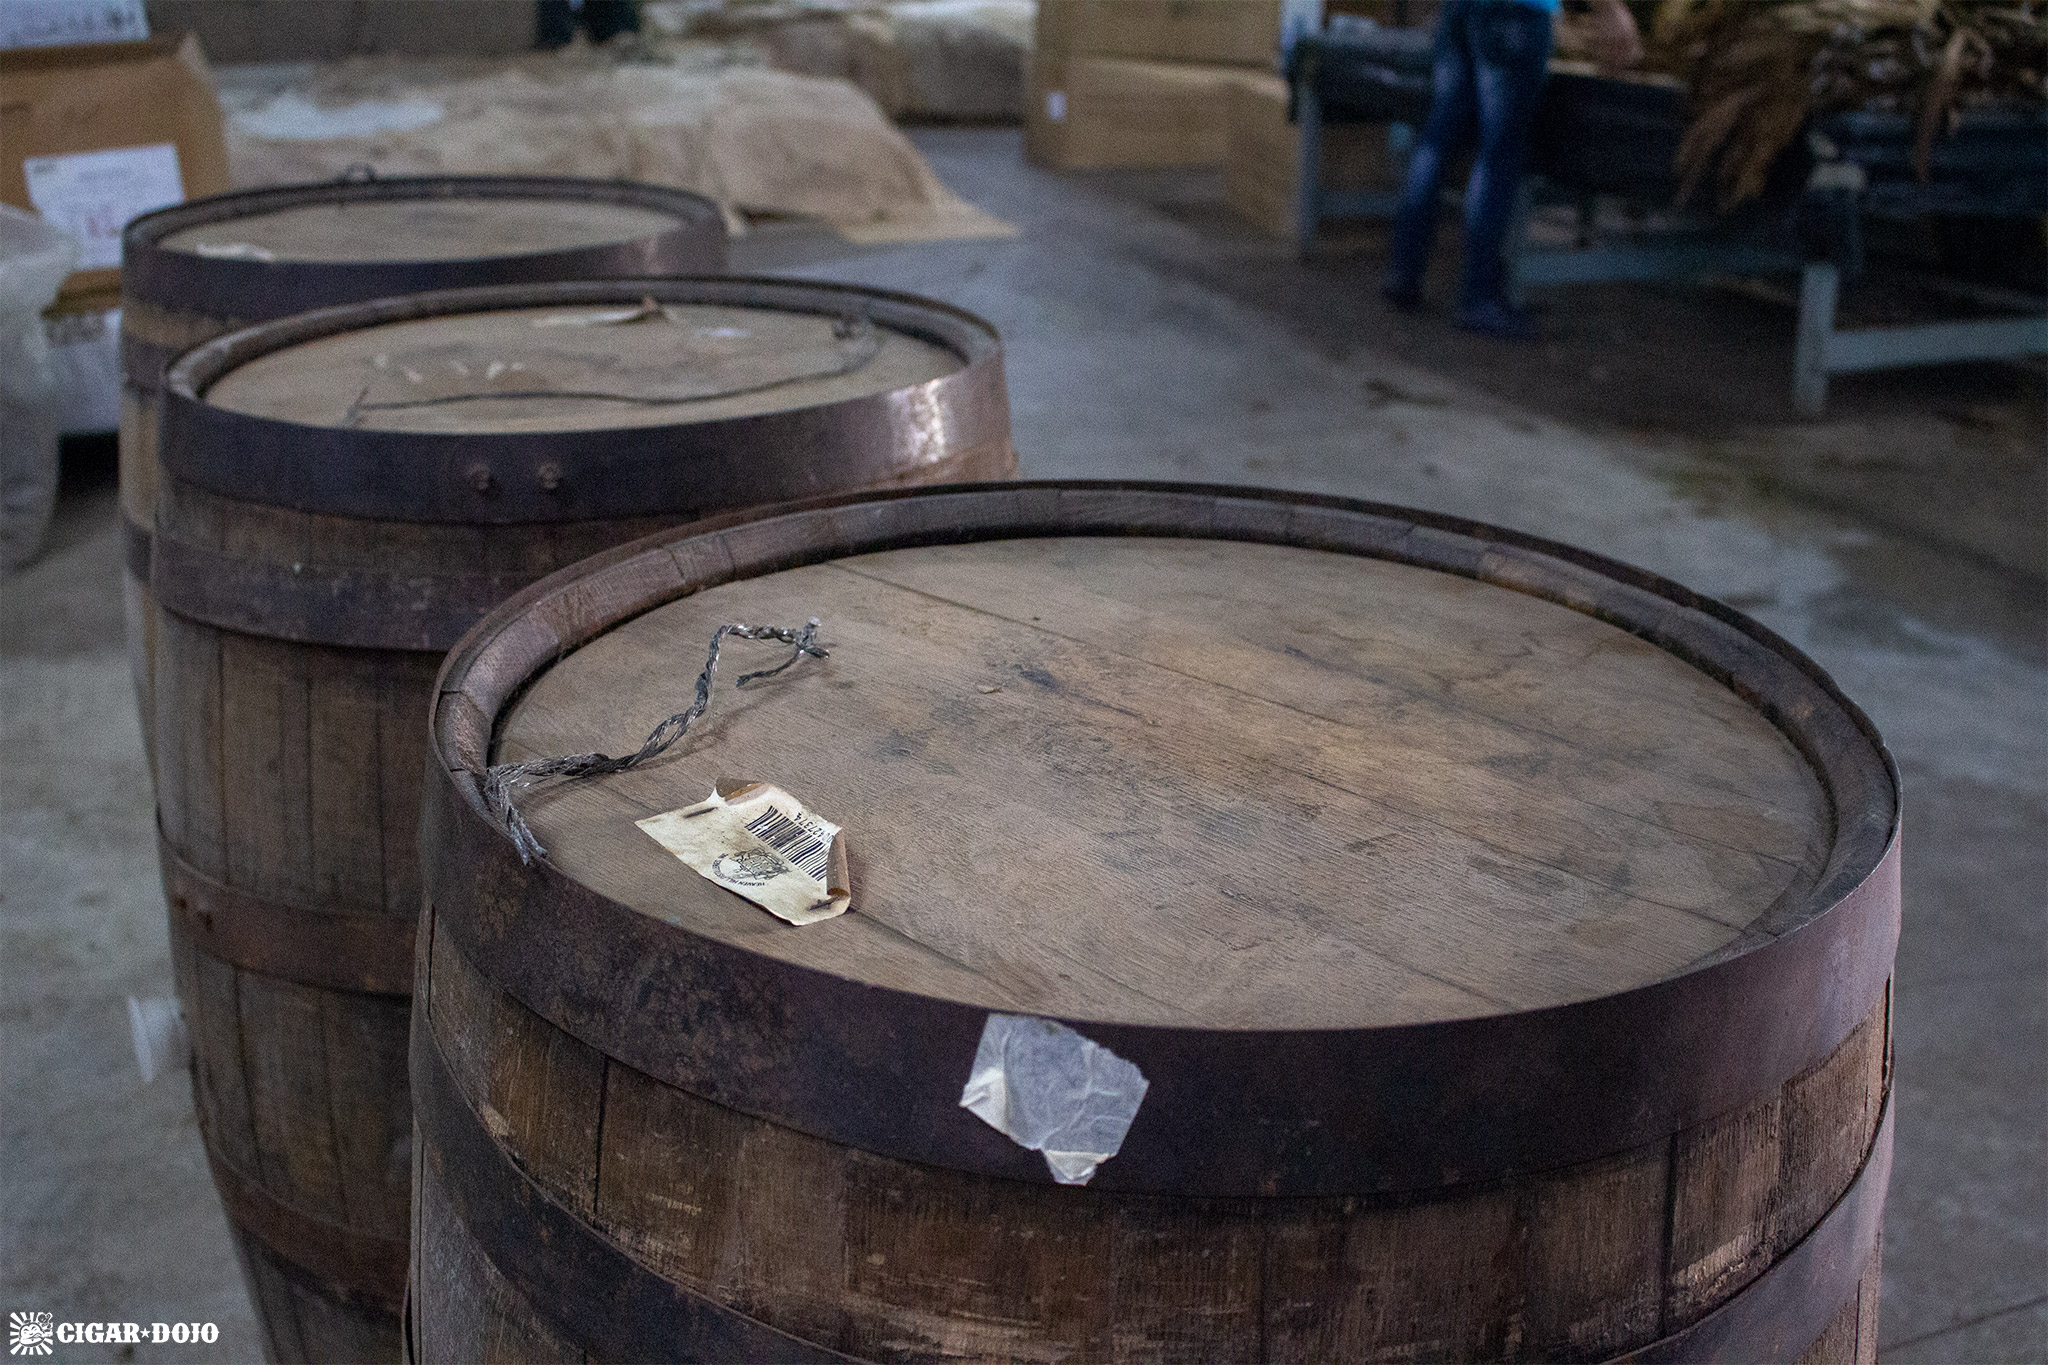 Camacho Dojo Imperial Stout Barrel-Aged barrels in factory